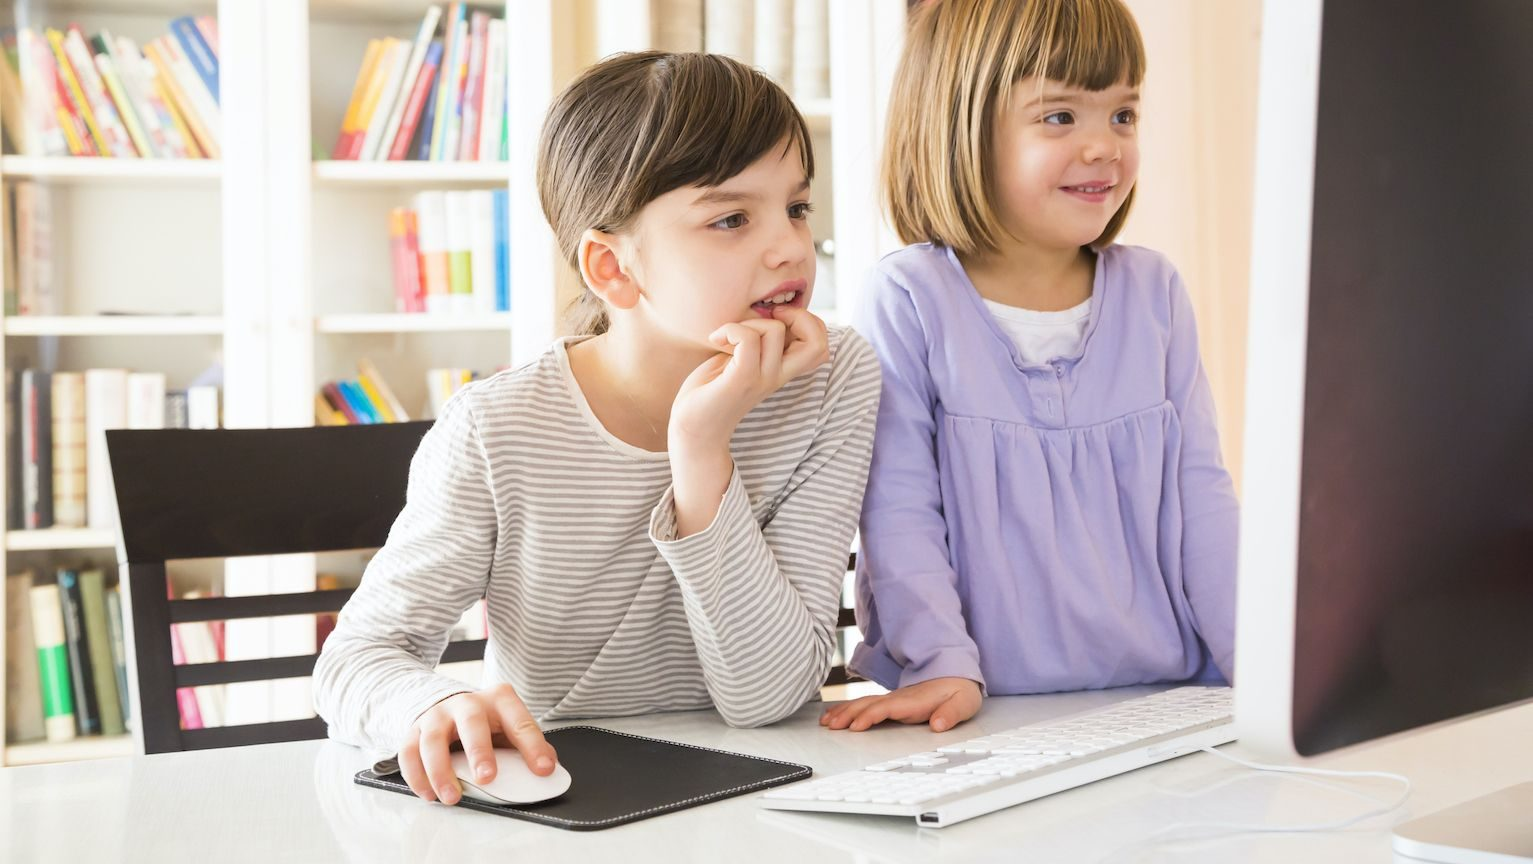 Two young sisters using the family computer with a mouse and mouse pad